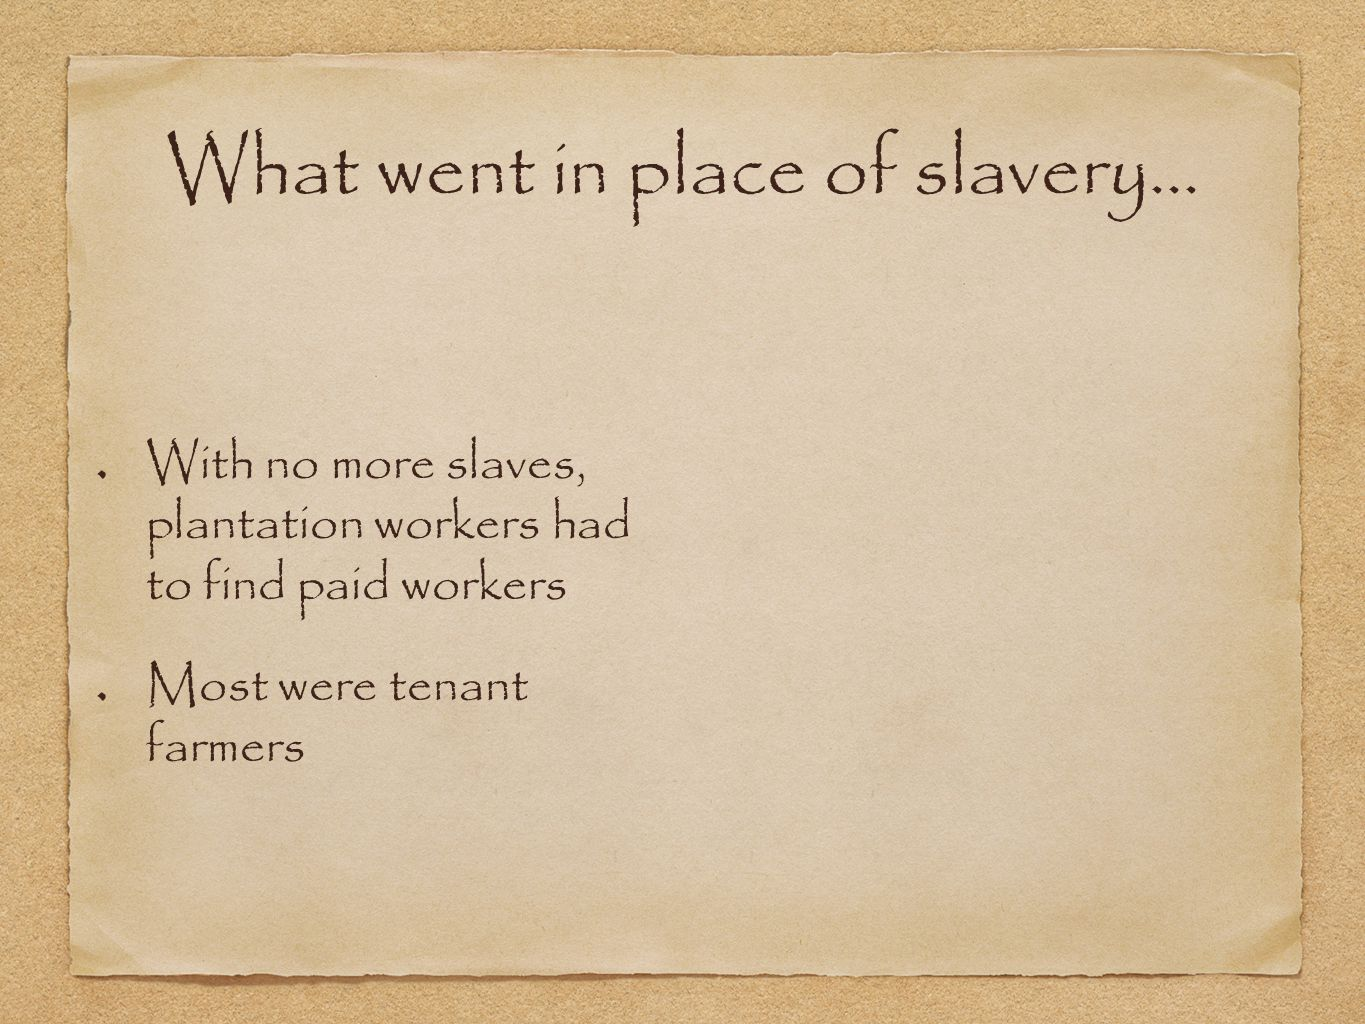 What went in place of slavery...